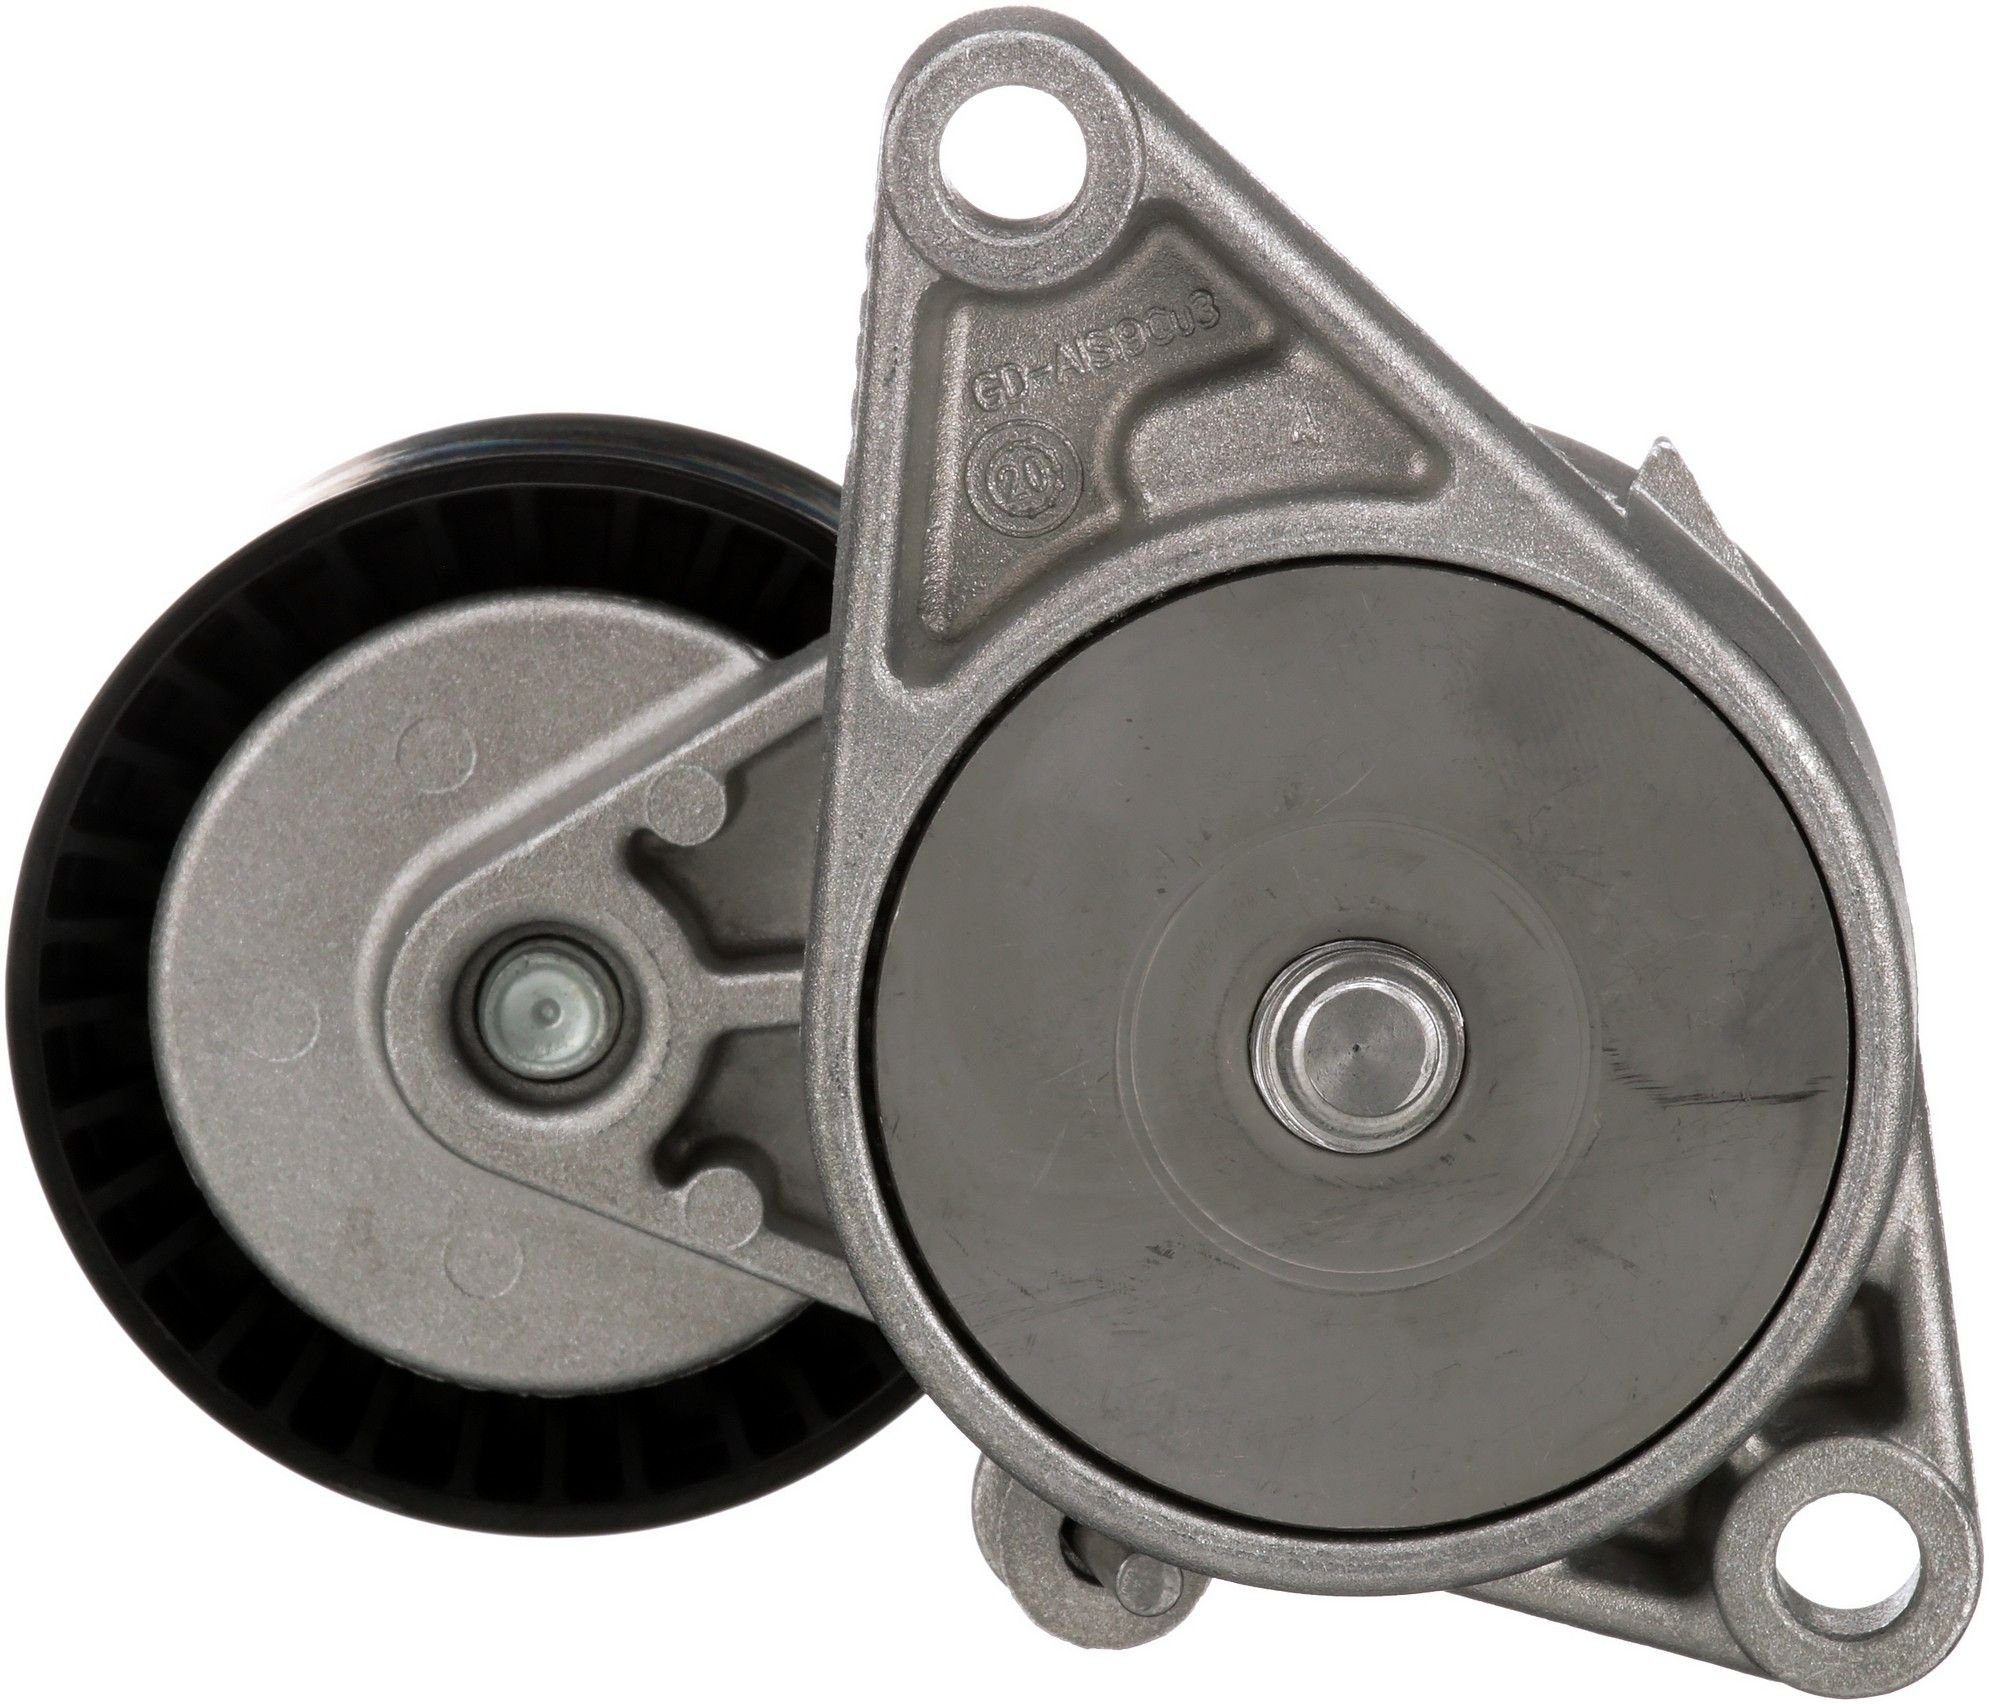 Bmw 328i Drive Belt Tensioner Assembly Replacement Dayco Dorman Timing 2000 Air Conditioning 6 Cyl 28l Gates 38224